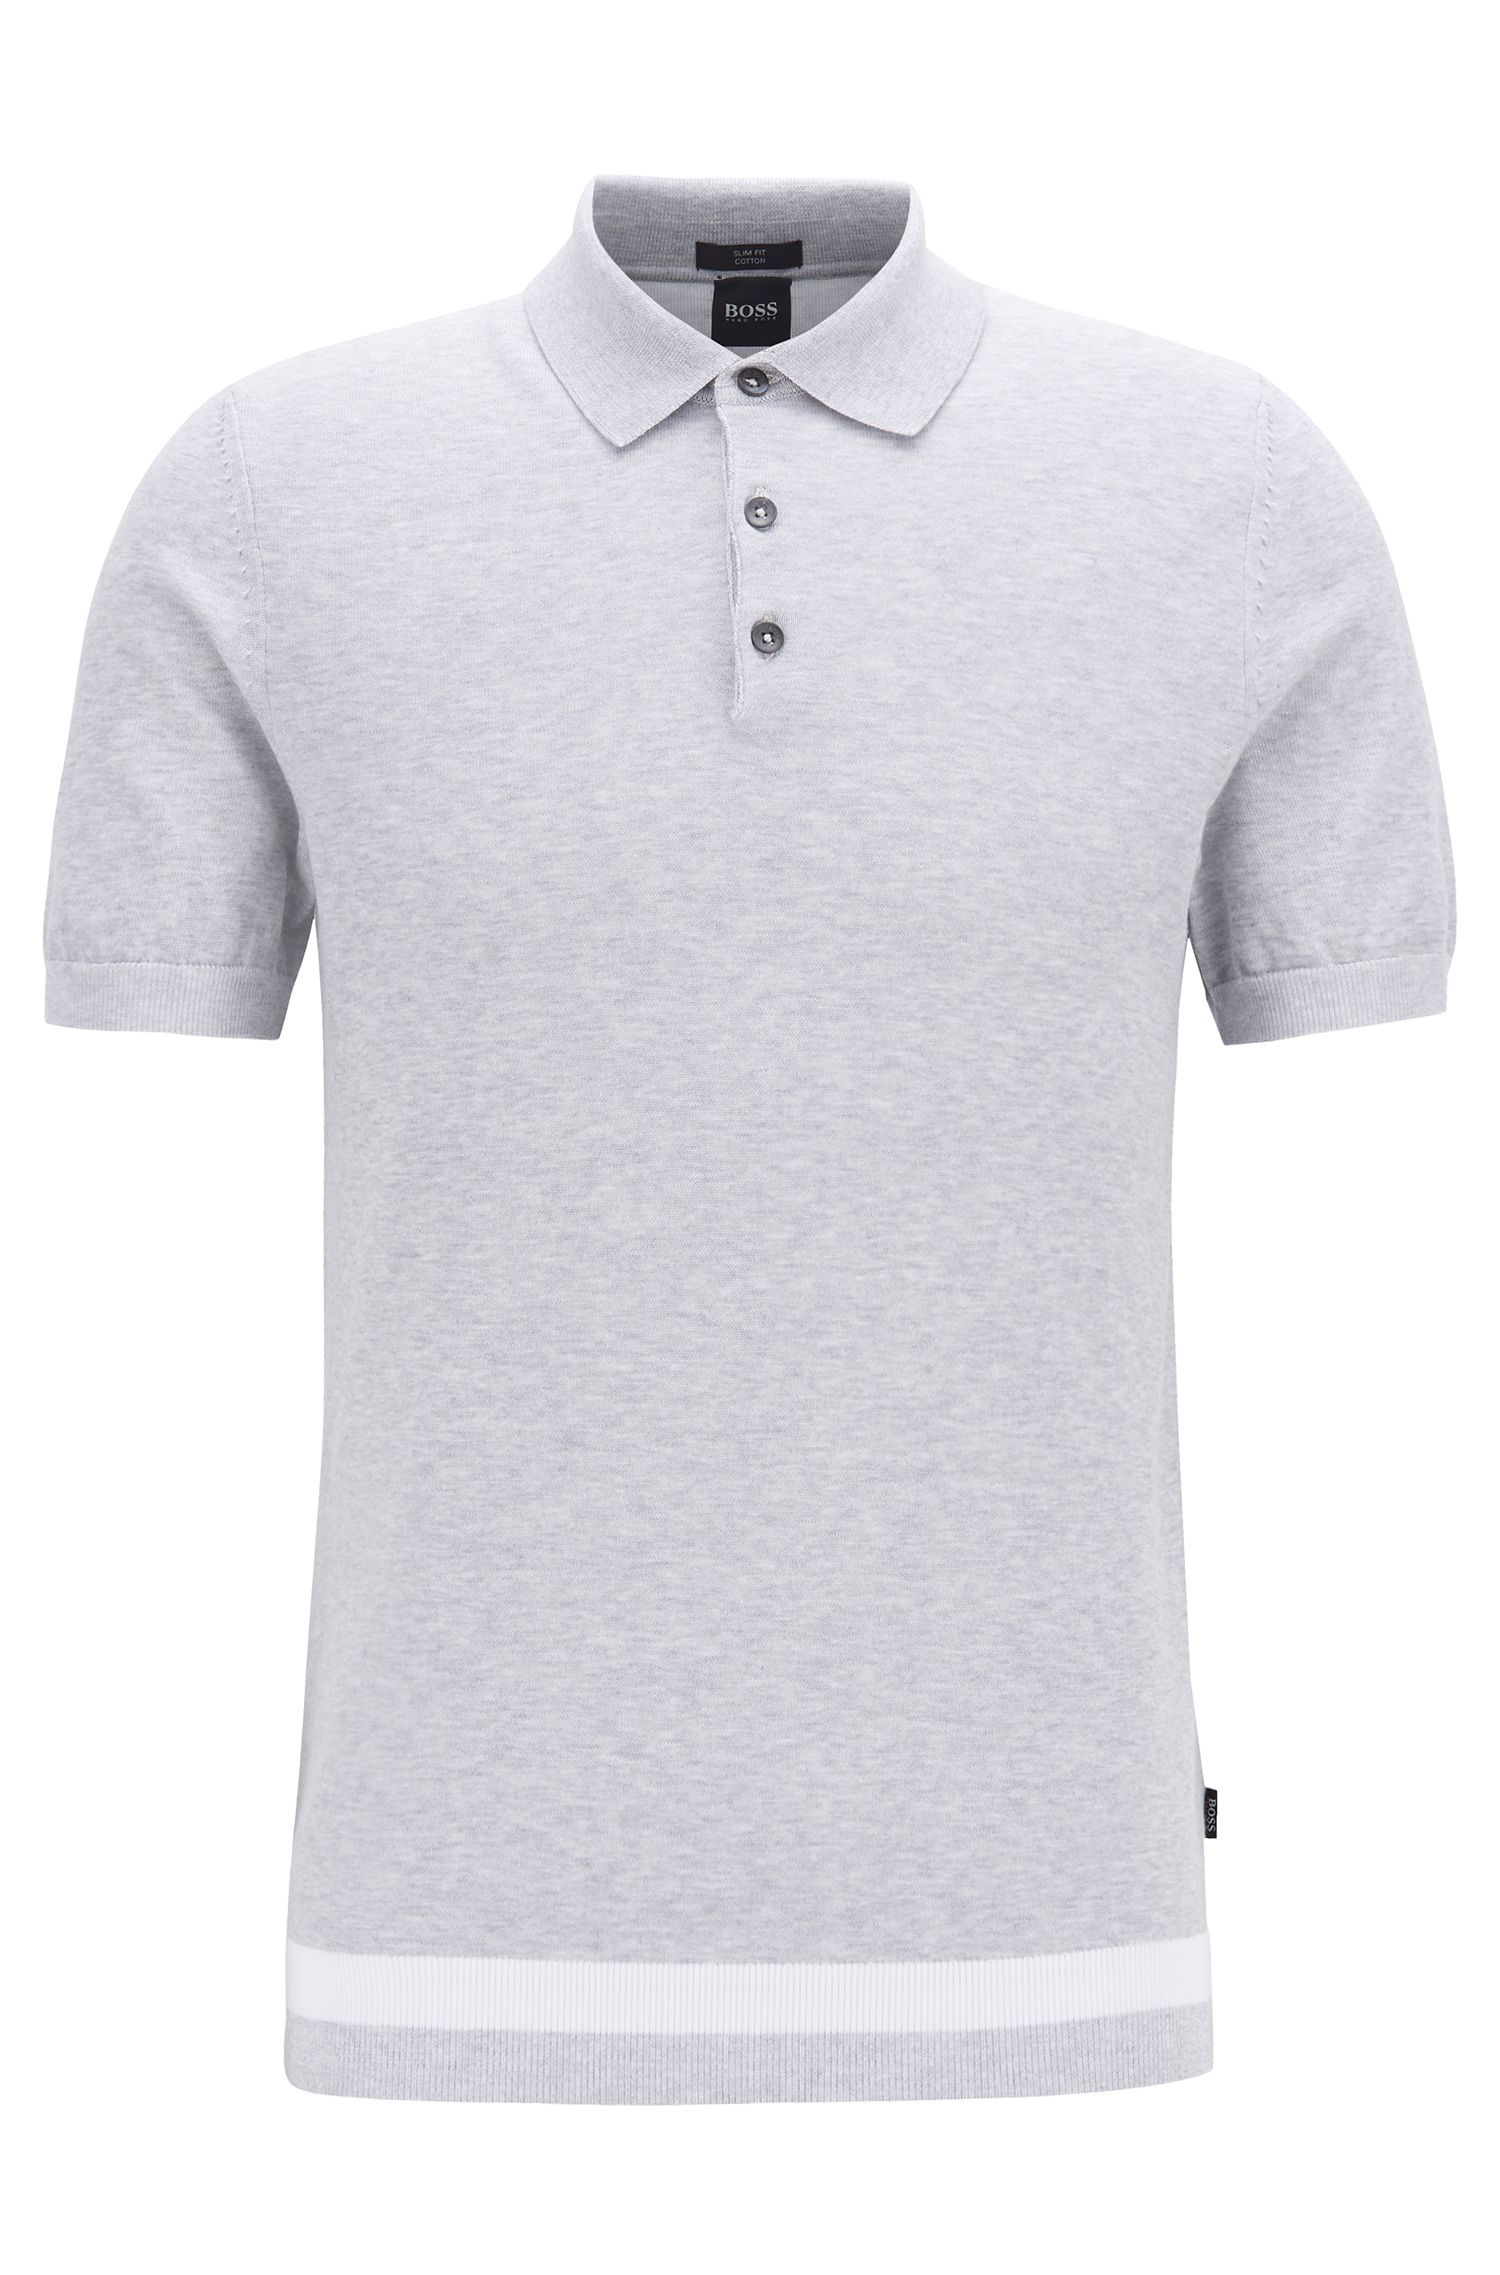 Slim-fit polo-style sweater in mouliné cotton, Open Grey